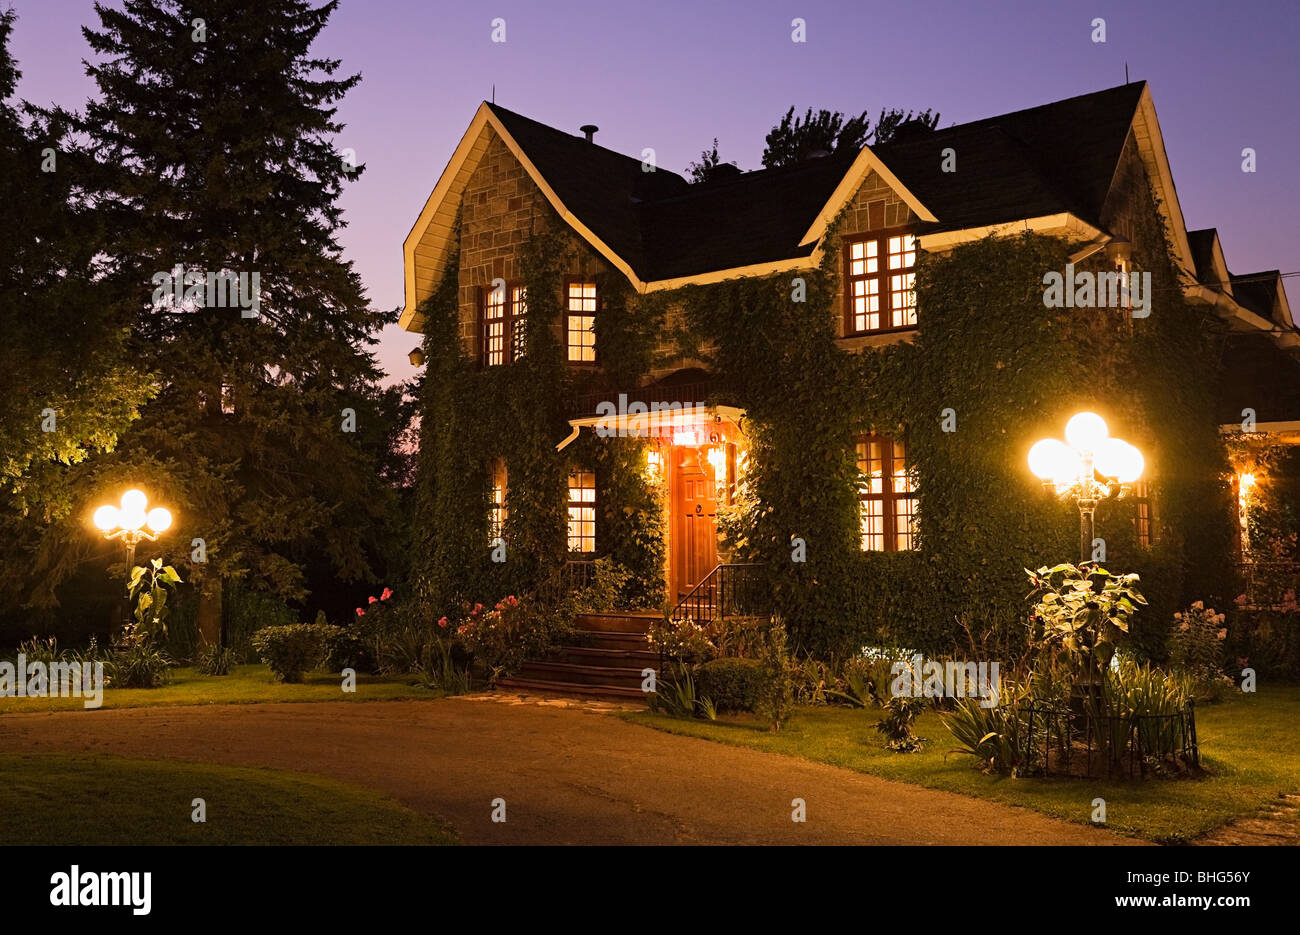 Detached house with lights - Stock Image